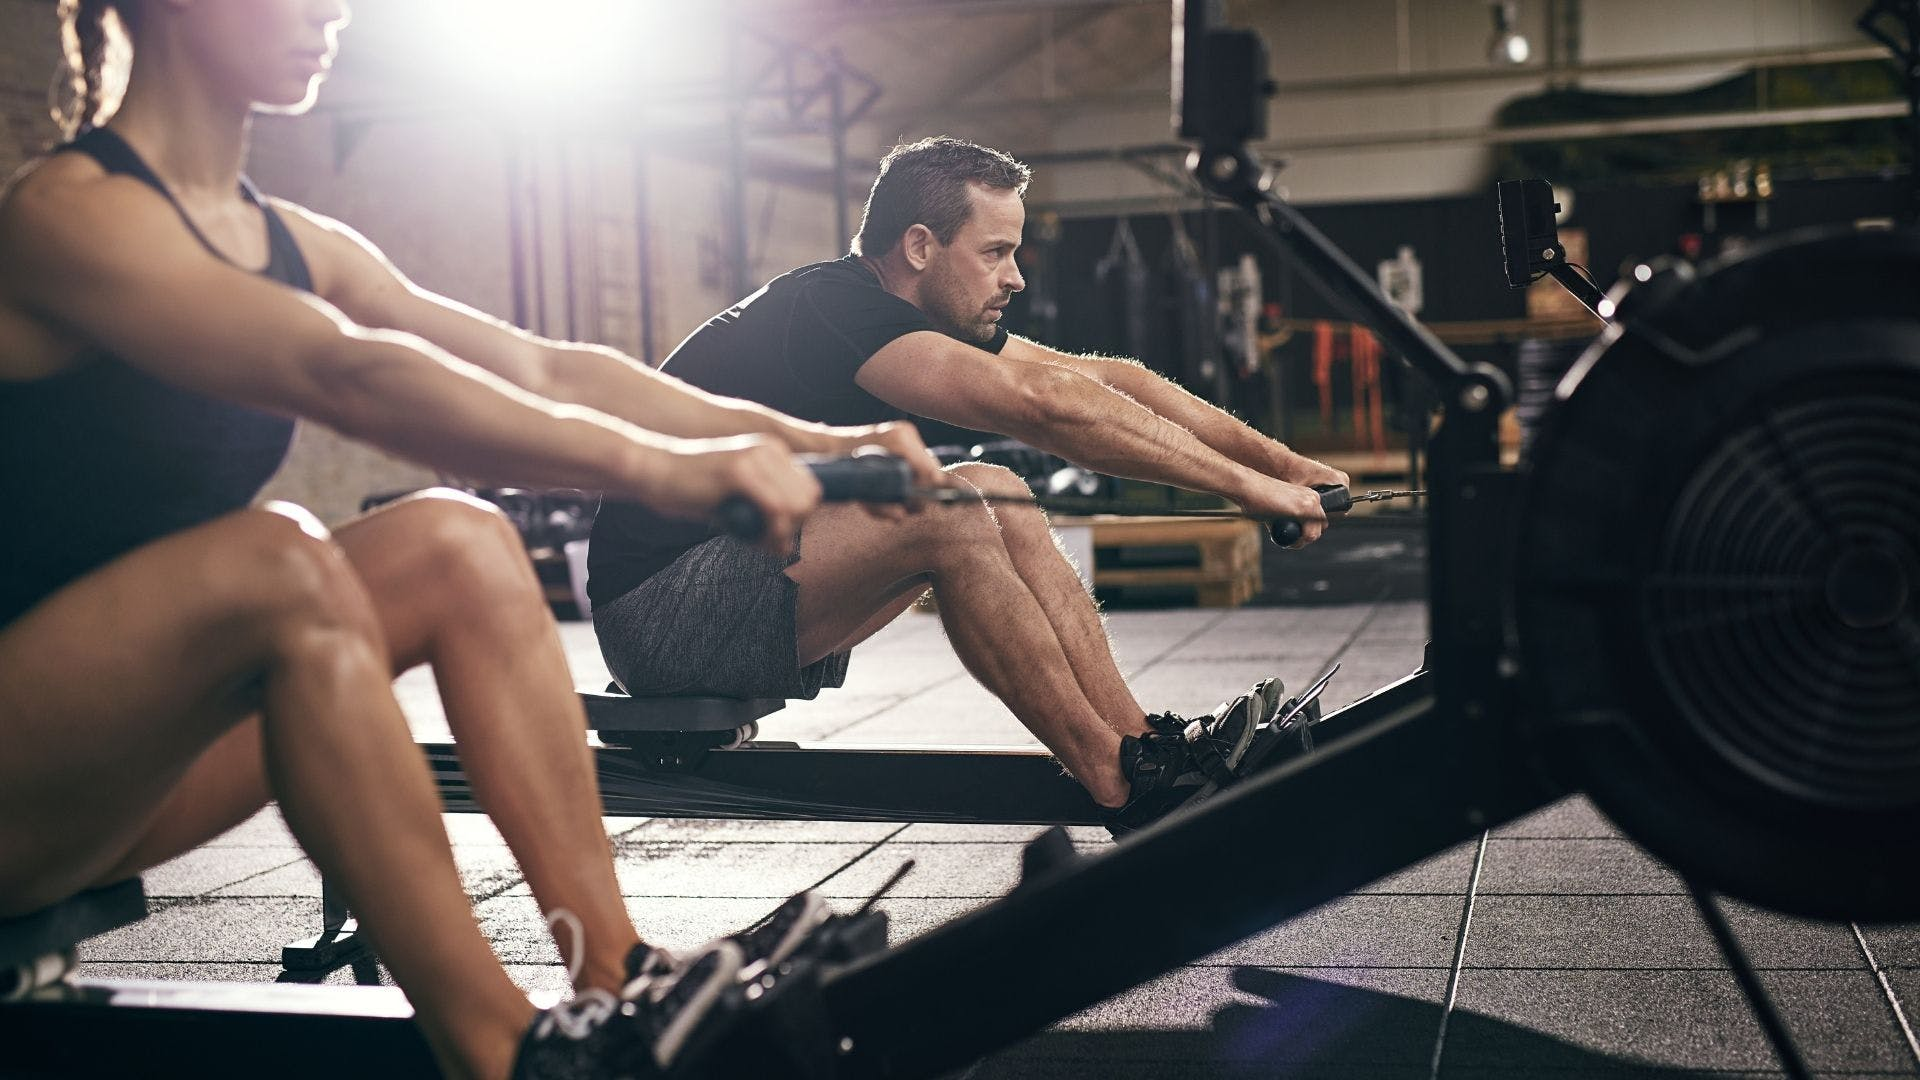 A man and a woman on rowing machines